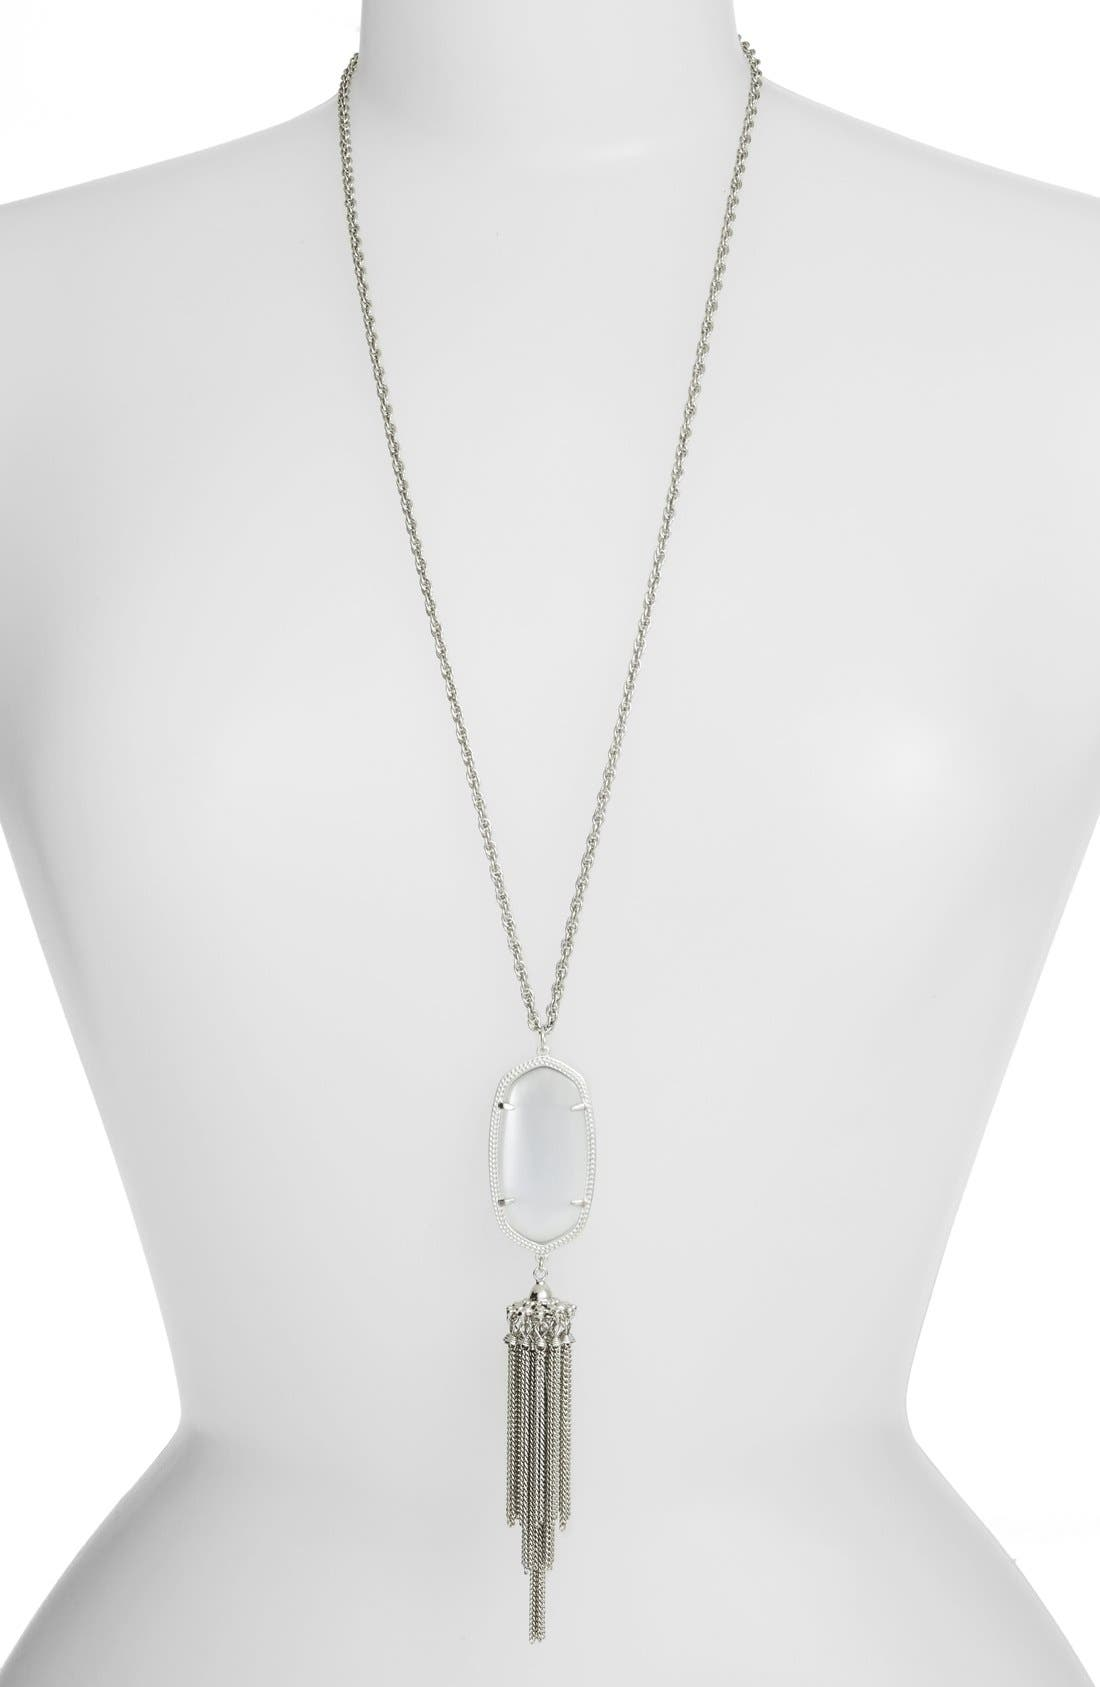 Main Image - Kendra Scott 'Rayne' Tassel Pendant Necklace